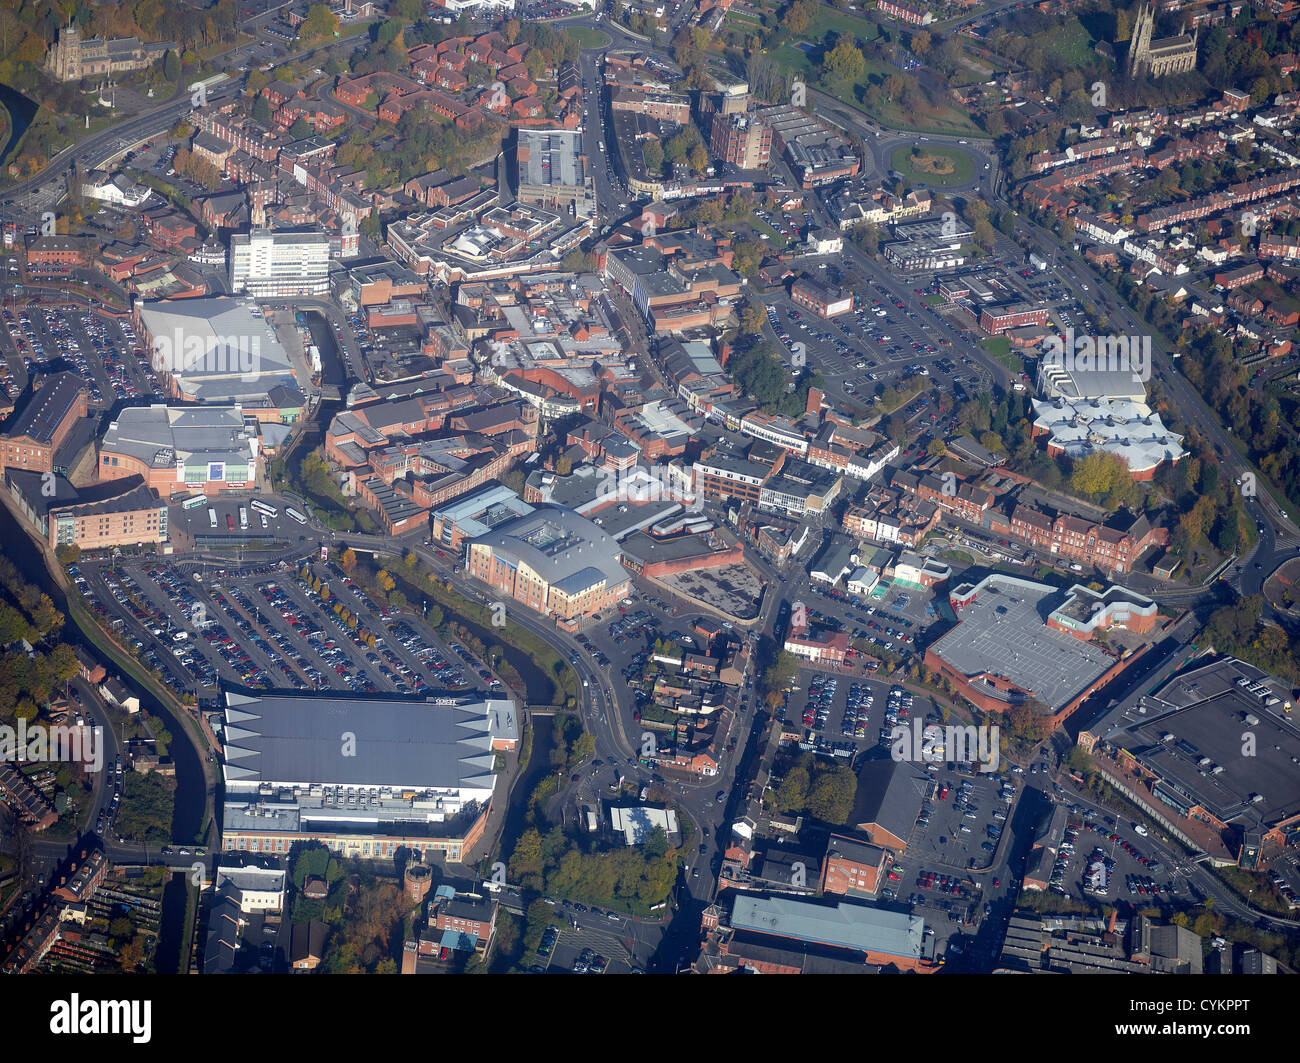 Kidderminster Town Centre from the air, West Midlands, England UK Stock Photo